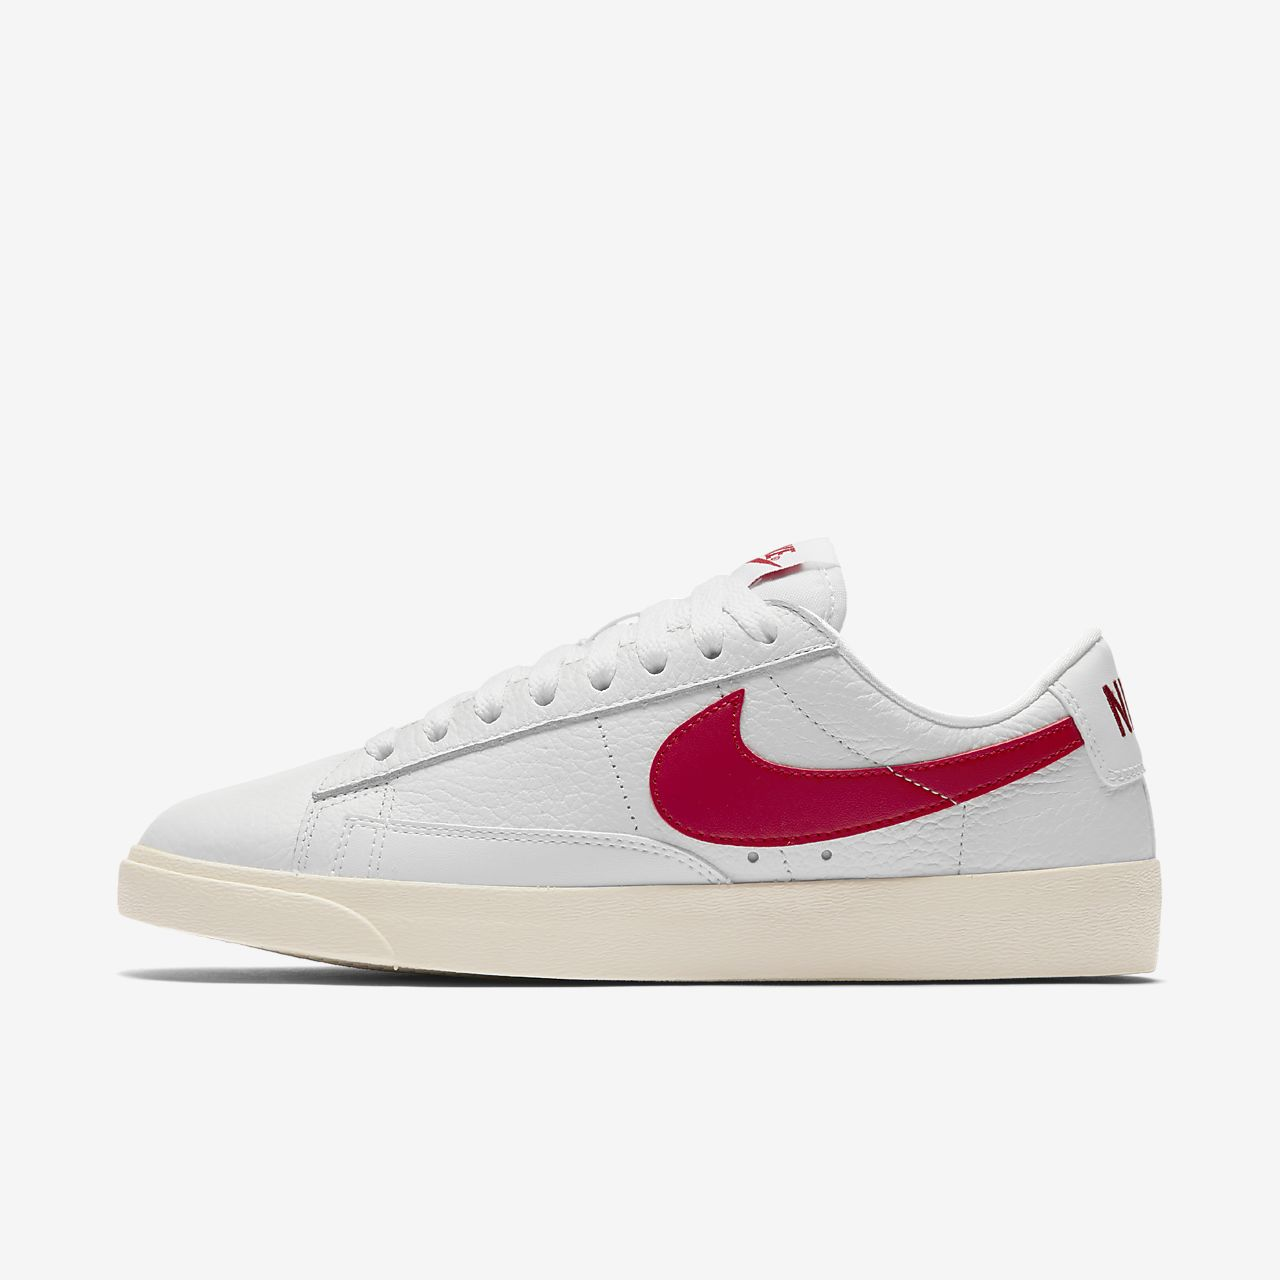 Nike Blazer Mid Premium Bas En Cuir Porte-documents Womans